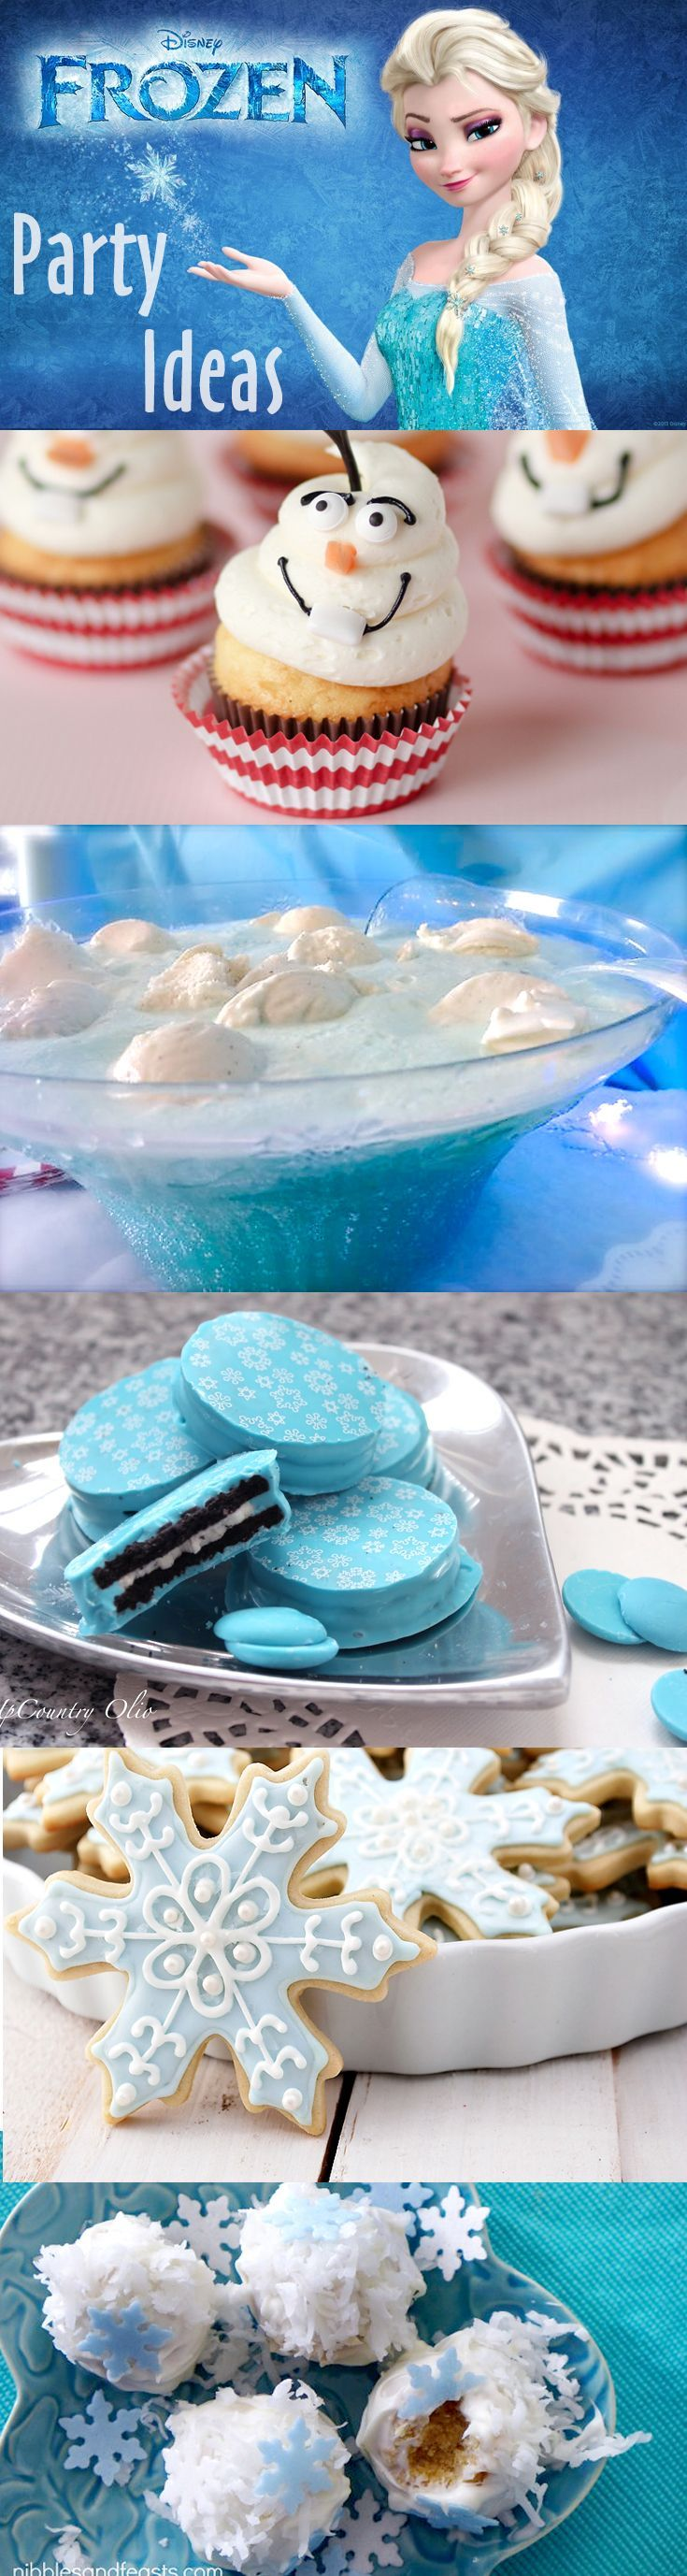 Throw a Disney Frozen Themed Party!  Ideas for your dessert and drink table like Olaf cupcakes, snowball punch, cake balls, and more!